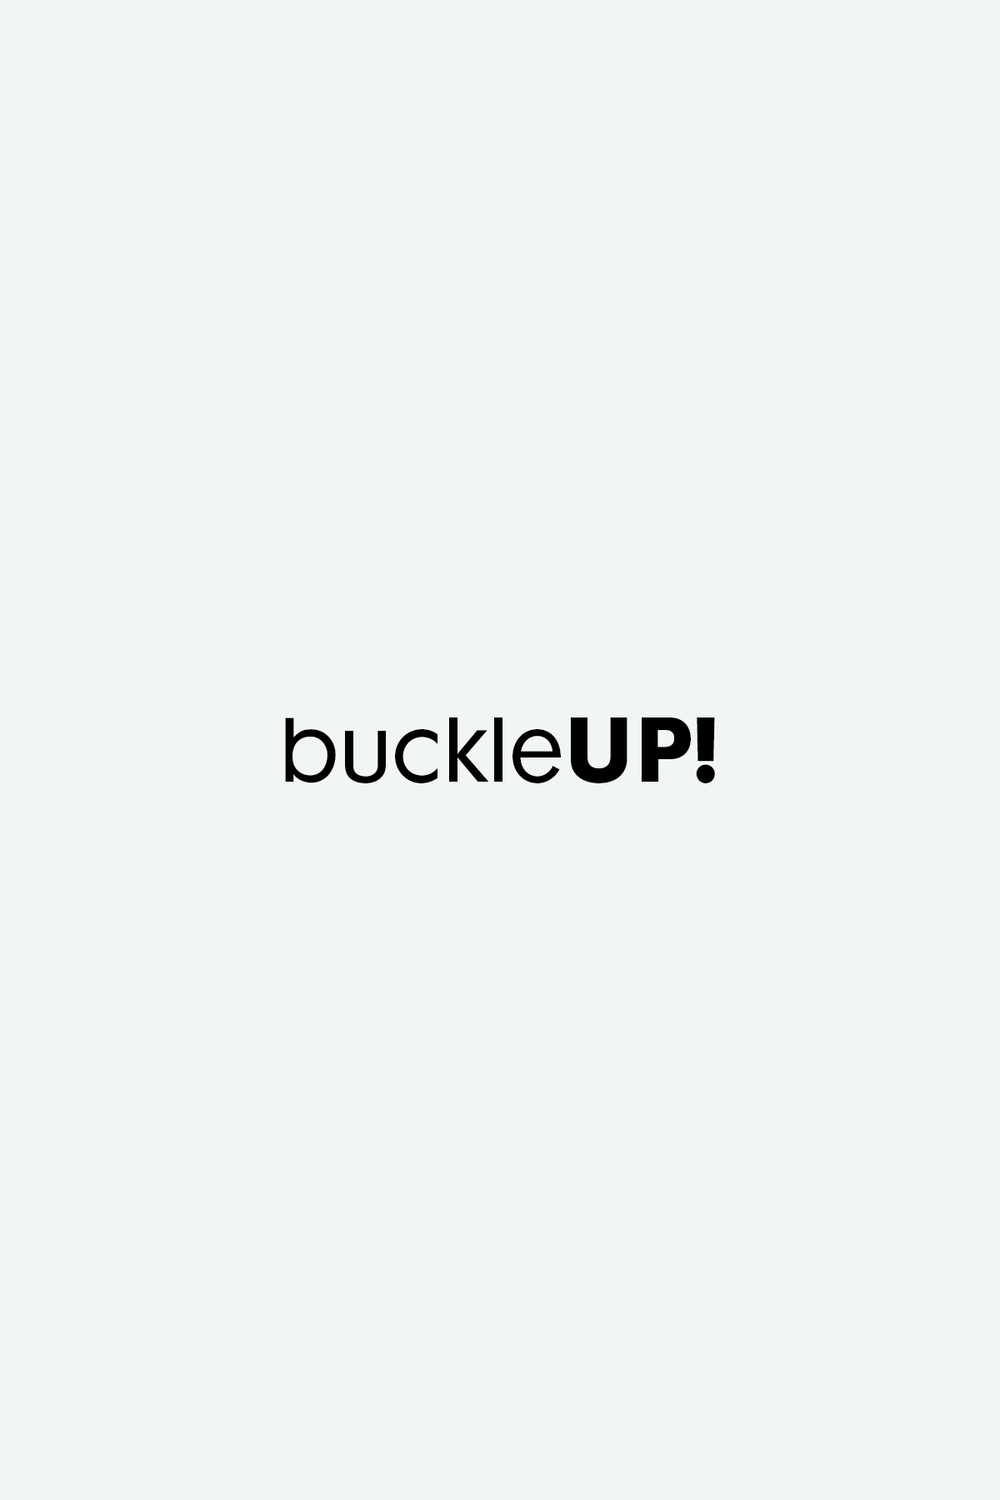 buckleUP_Text.png